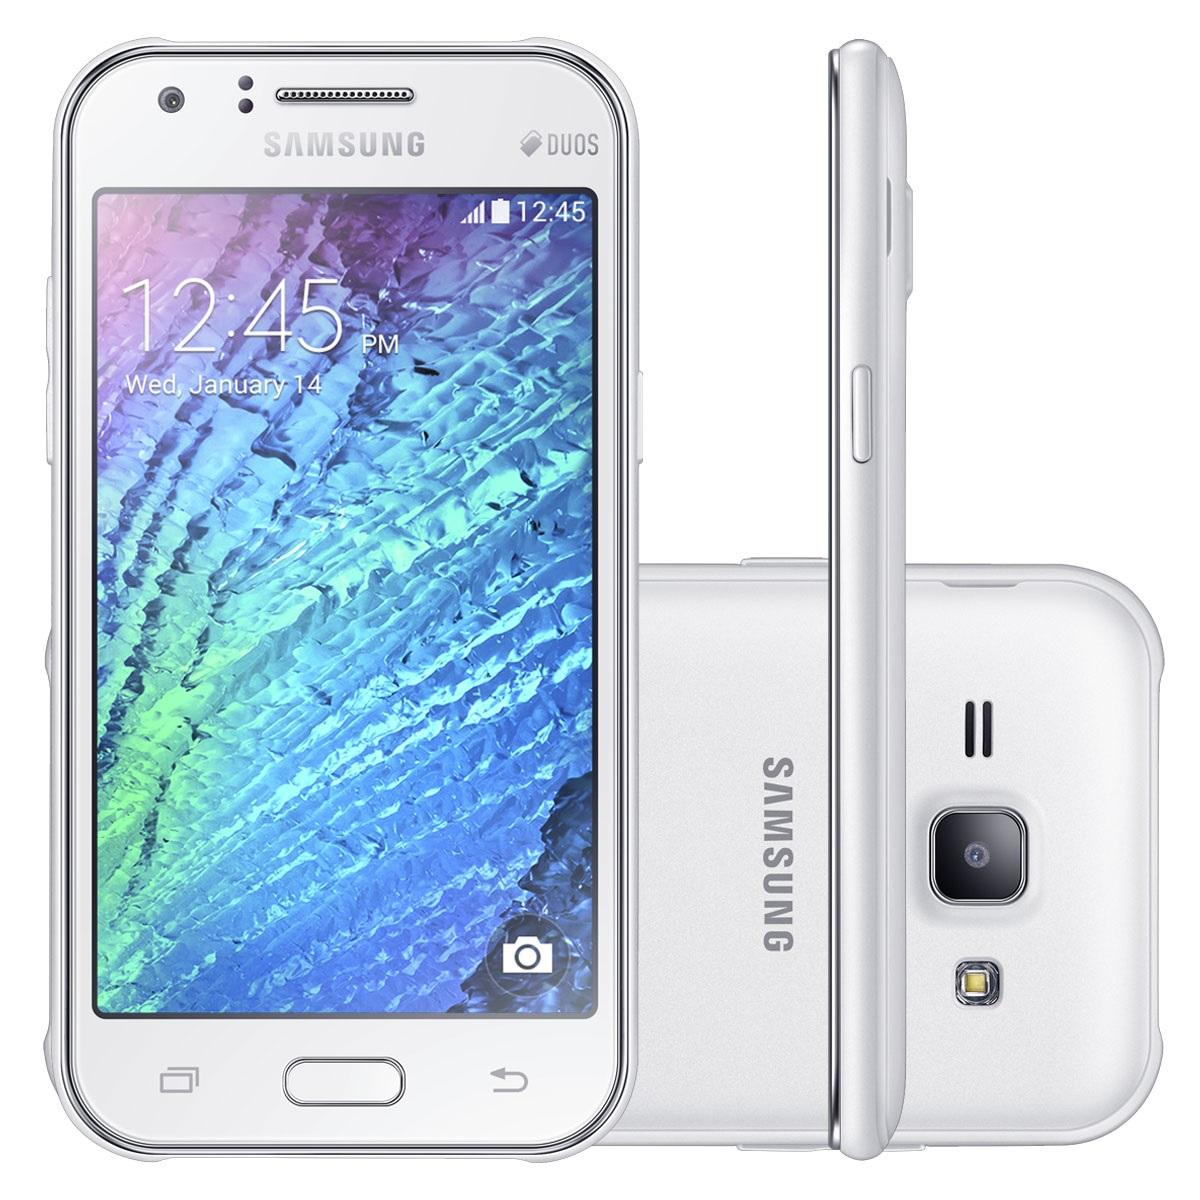 Samsung Galaxy J1 DUOS 2016 Unlocked GSM 4G LTE Android